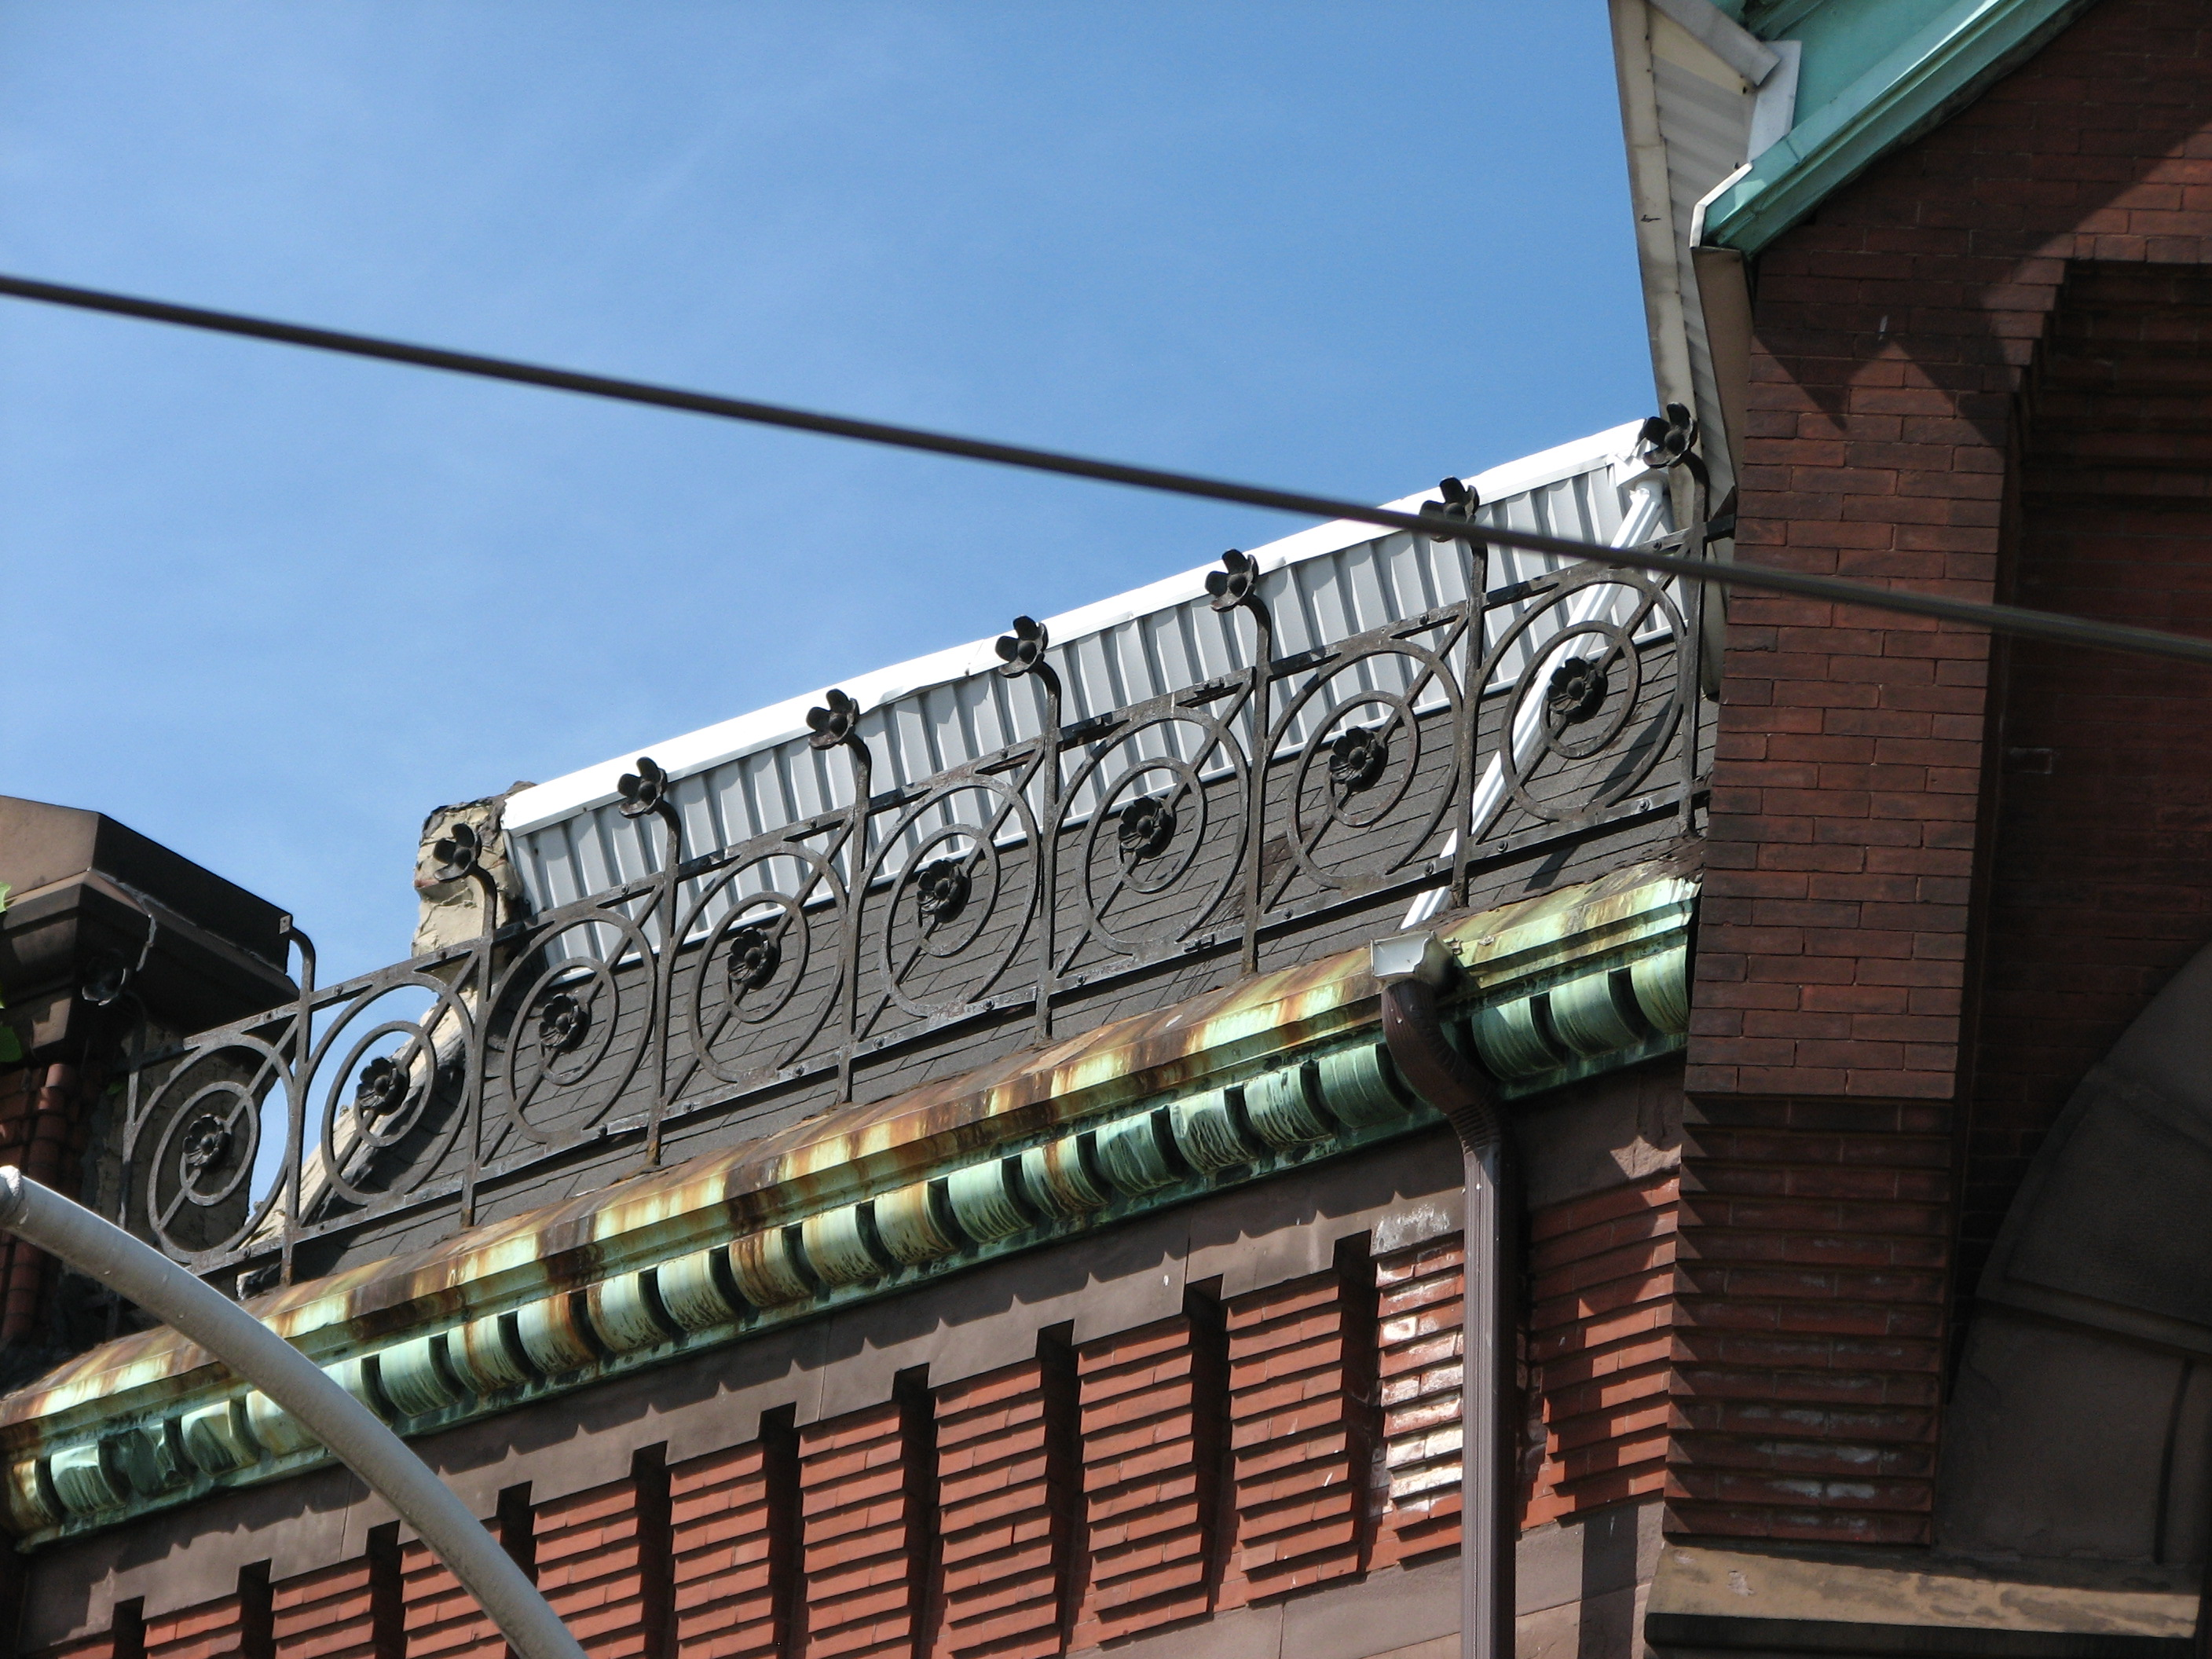 The elaborate ironwork along the roofline, as well as many other features, recall the work of Frank Furness.